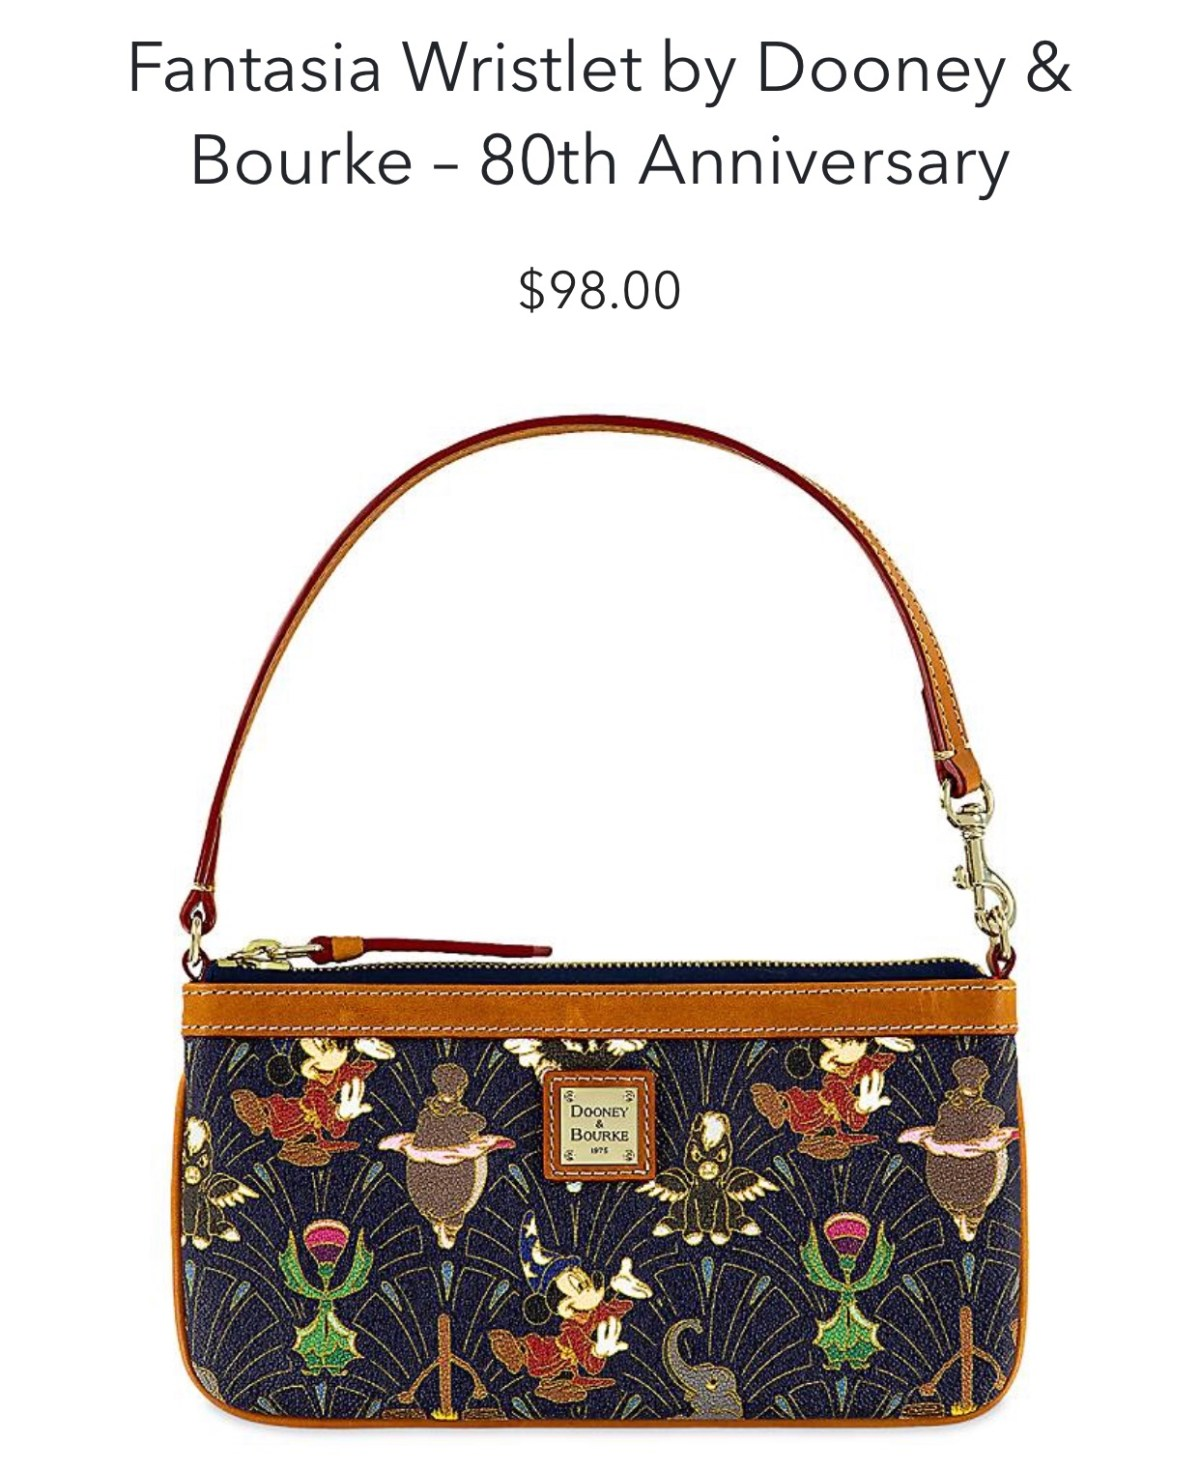 Disney Dooney & Bourke wristlet Fantasia 80th Anniversary